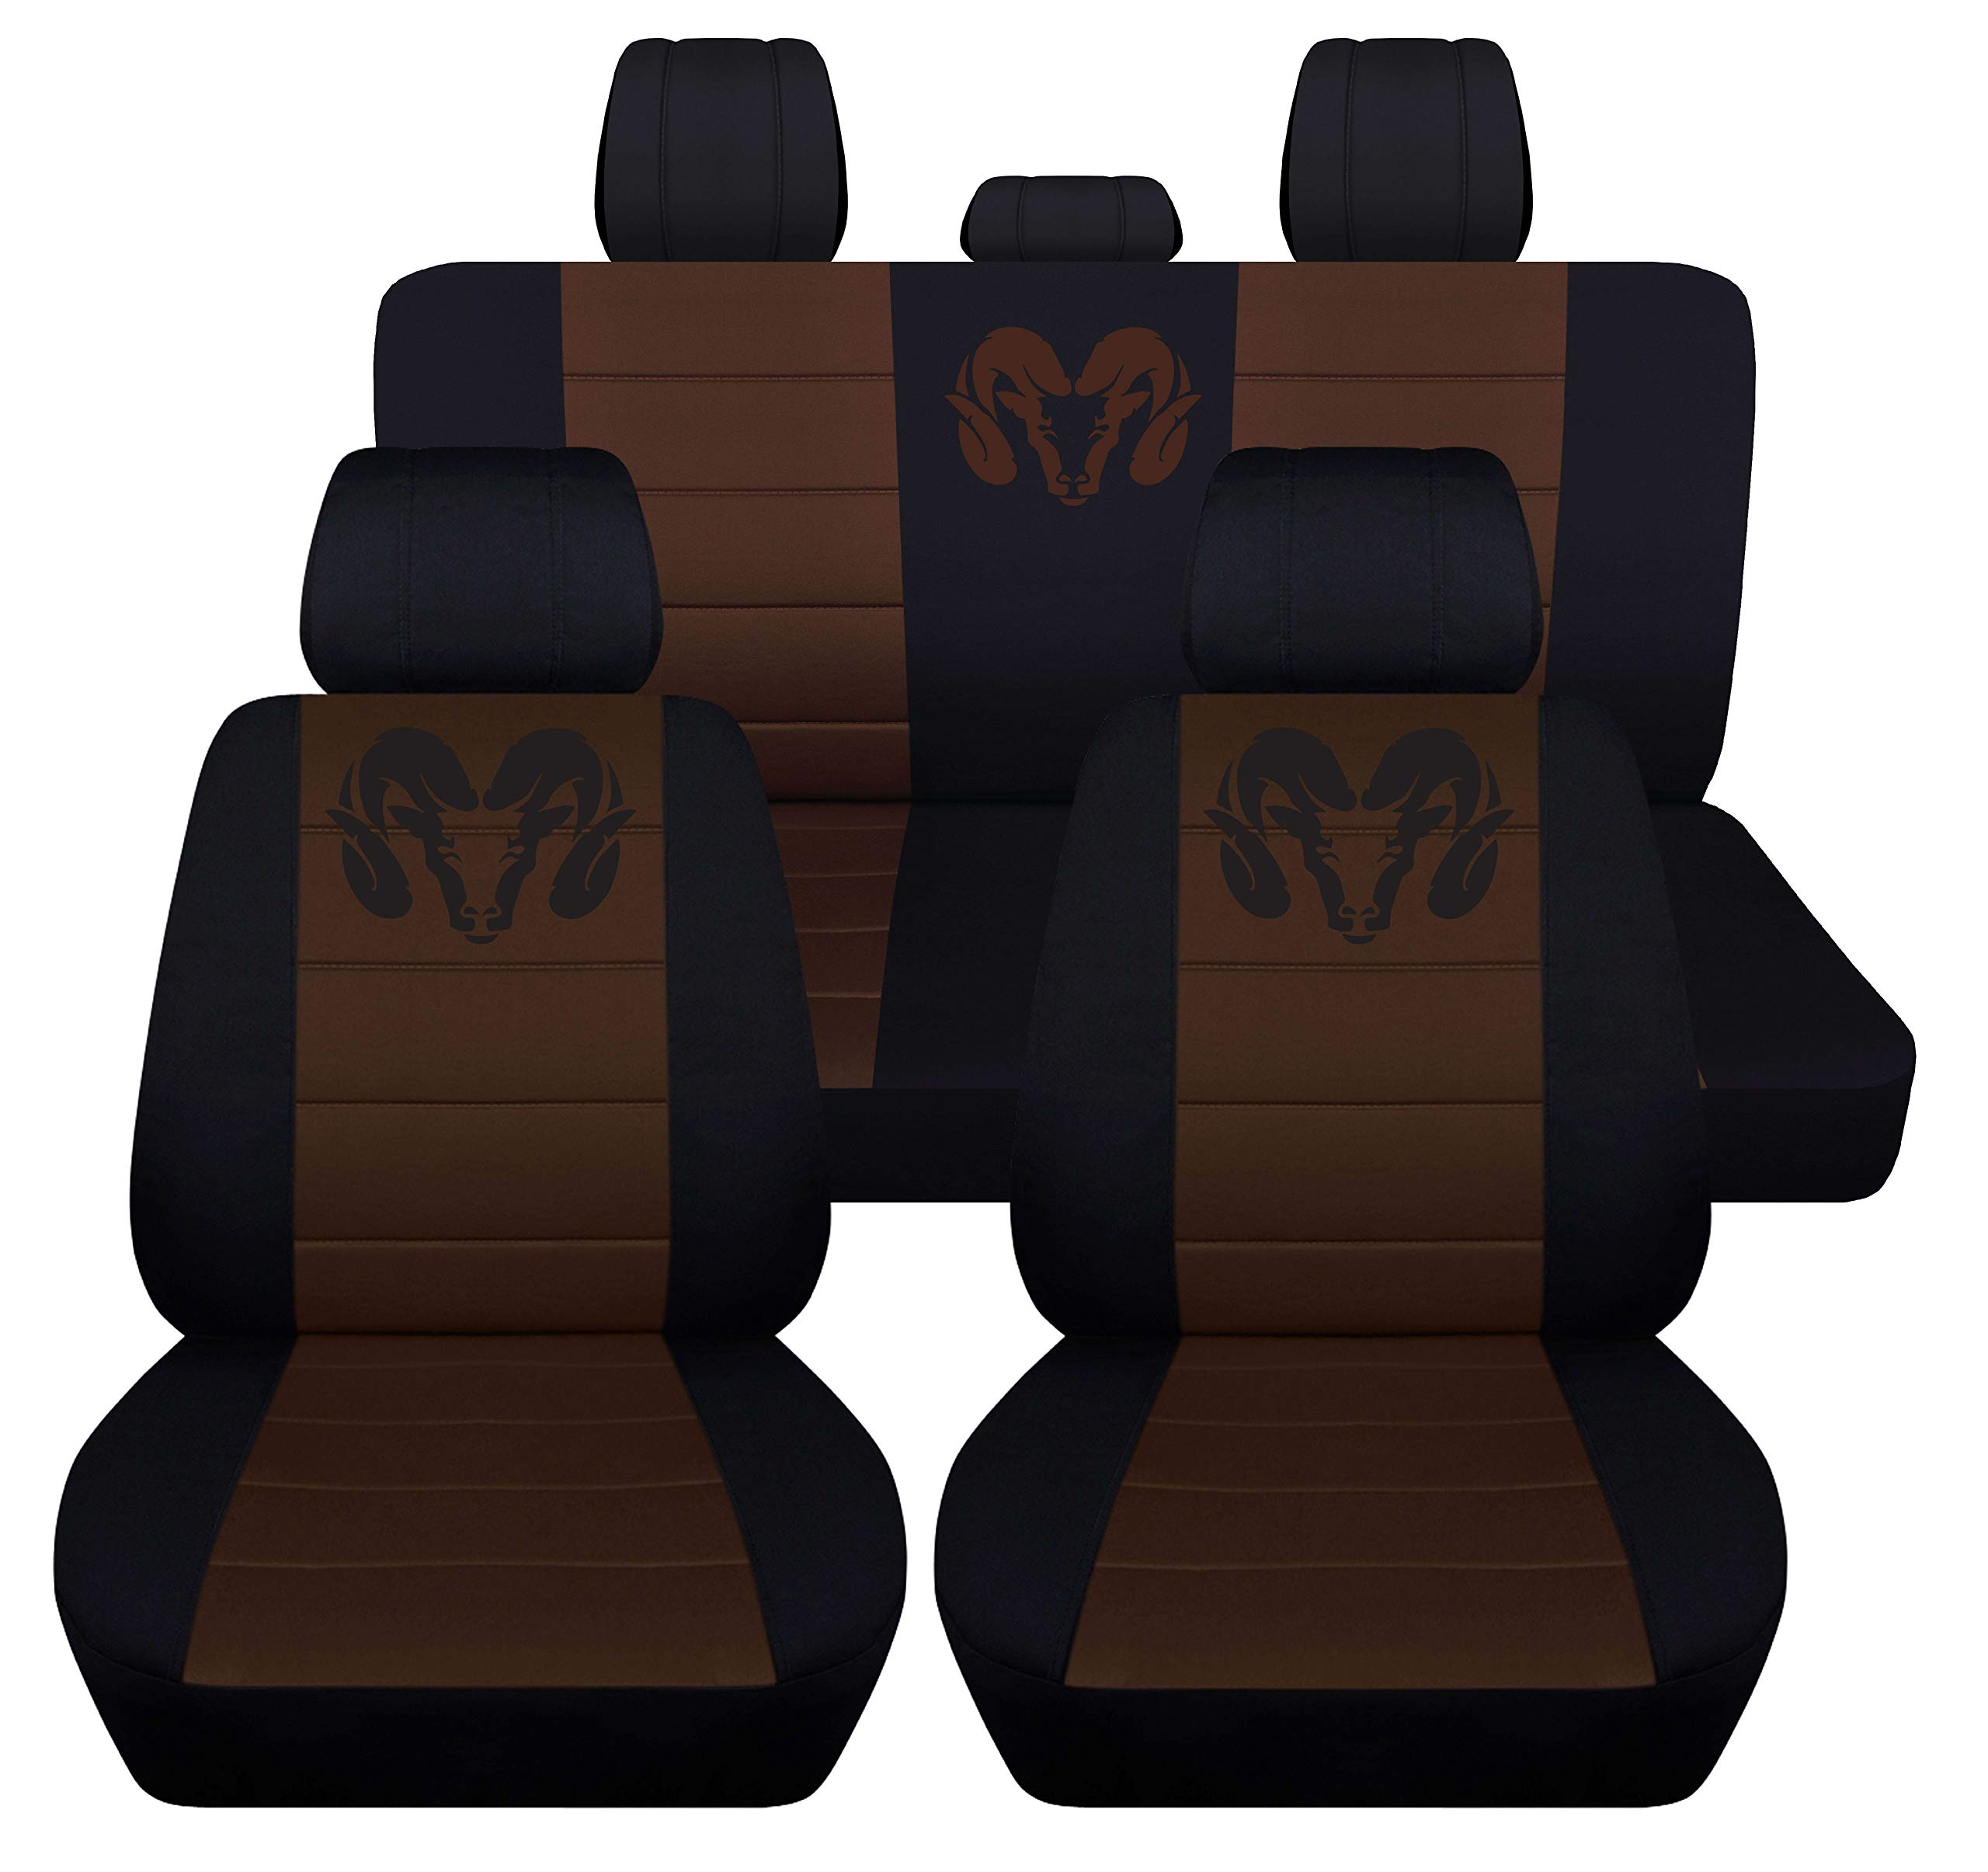 40 20 40 Front and Rear Seat Covers for 2013 to 2018 Dodge Ram 22 Color Options (Solid Rear Bench, Black Brown)